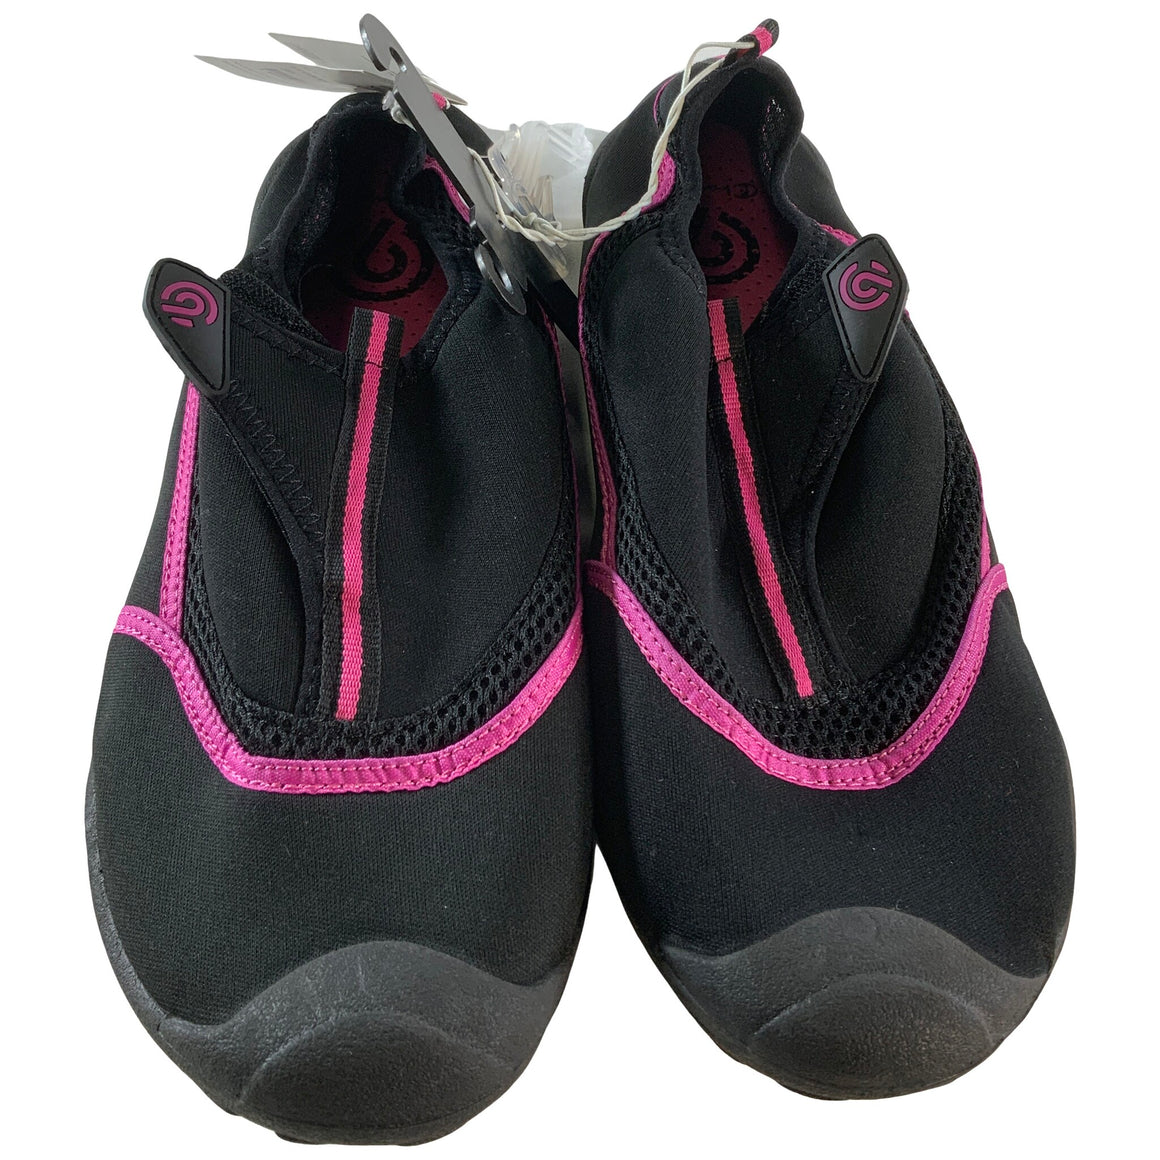 Women'S Lucille Water Shoes - Black/Pink Xl - C9 Champion®